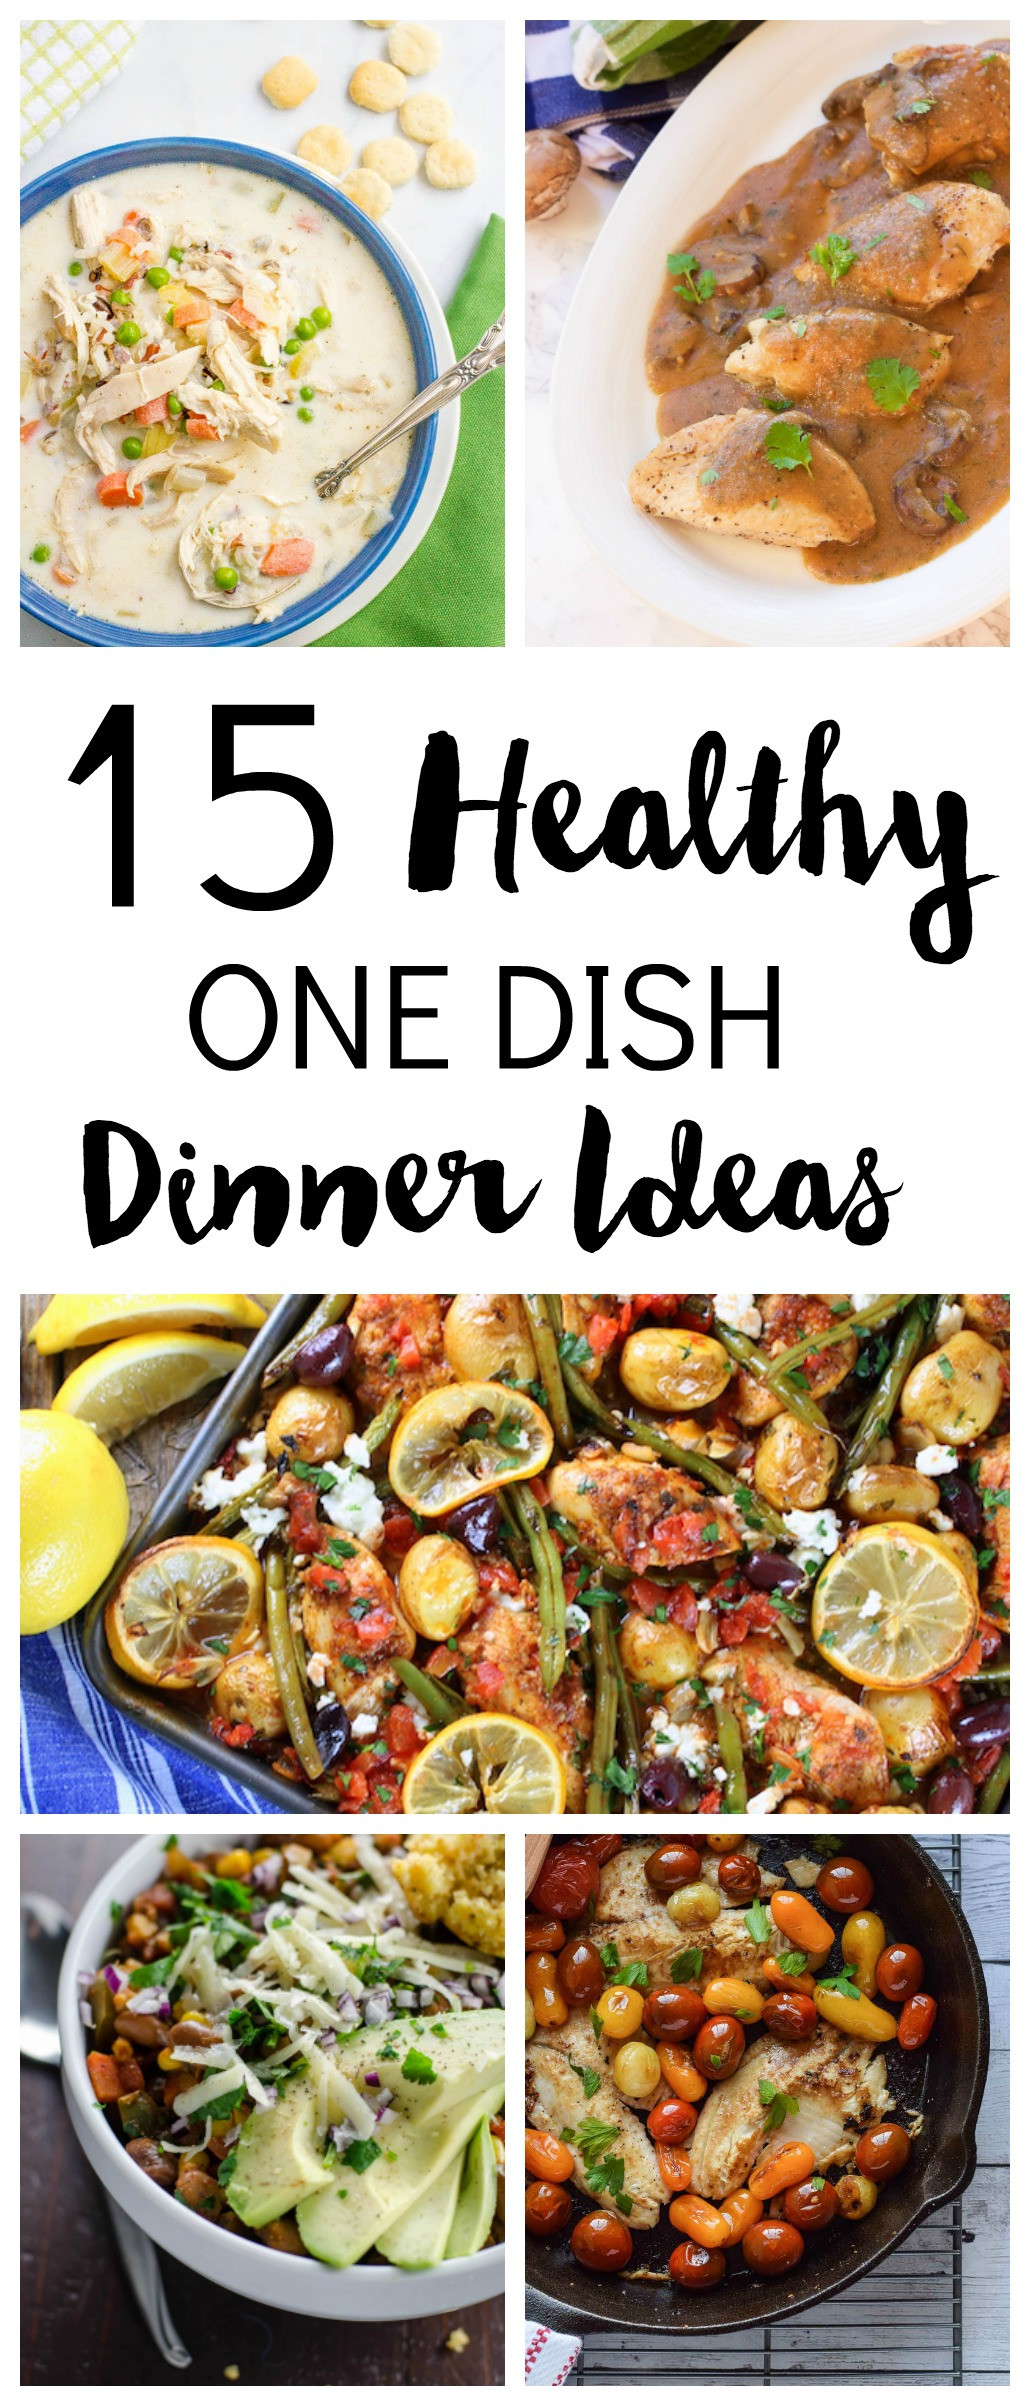 Healthy One Dish Dinners  15 Healthy e Dish Dinner Ideas